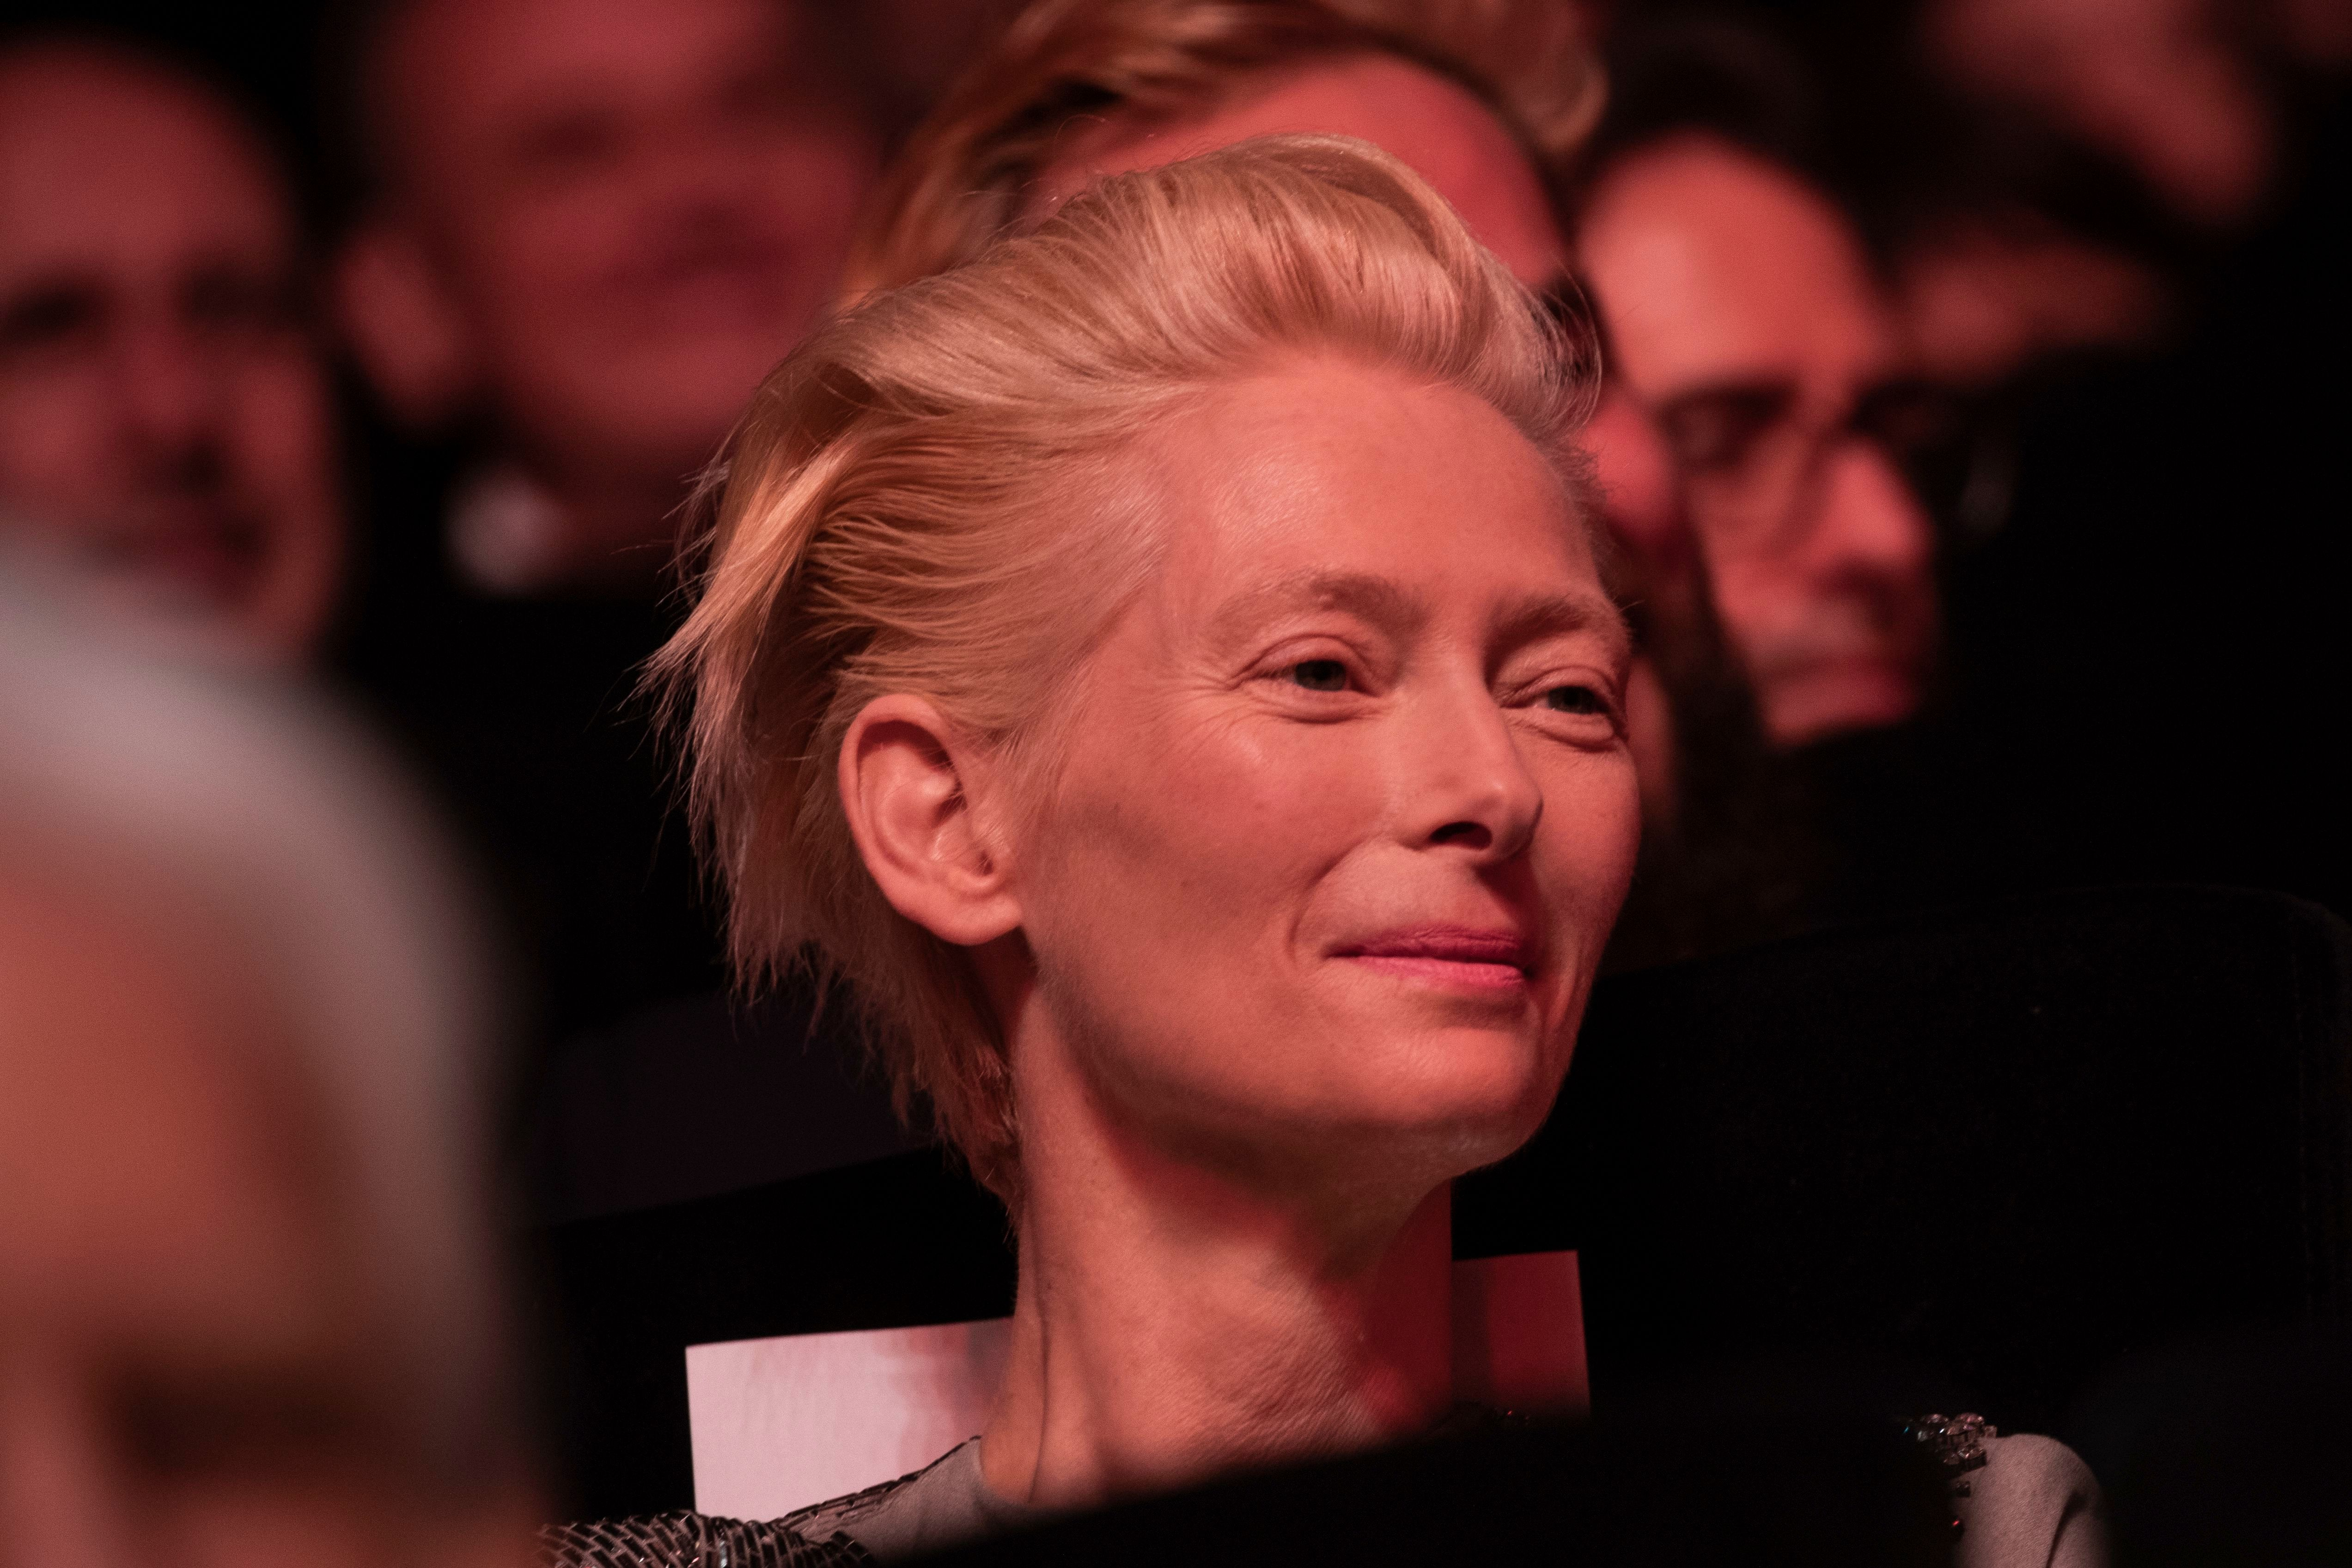 Tilda Swinton during the opening ceremony and the premiere of the film 'The Dead Don't Die' at the 72nd international film festival, Cannes, southern France2019 The Dead Don't Die Red Carpet, Cannes, France - 14 May 2019